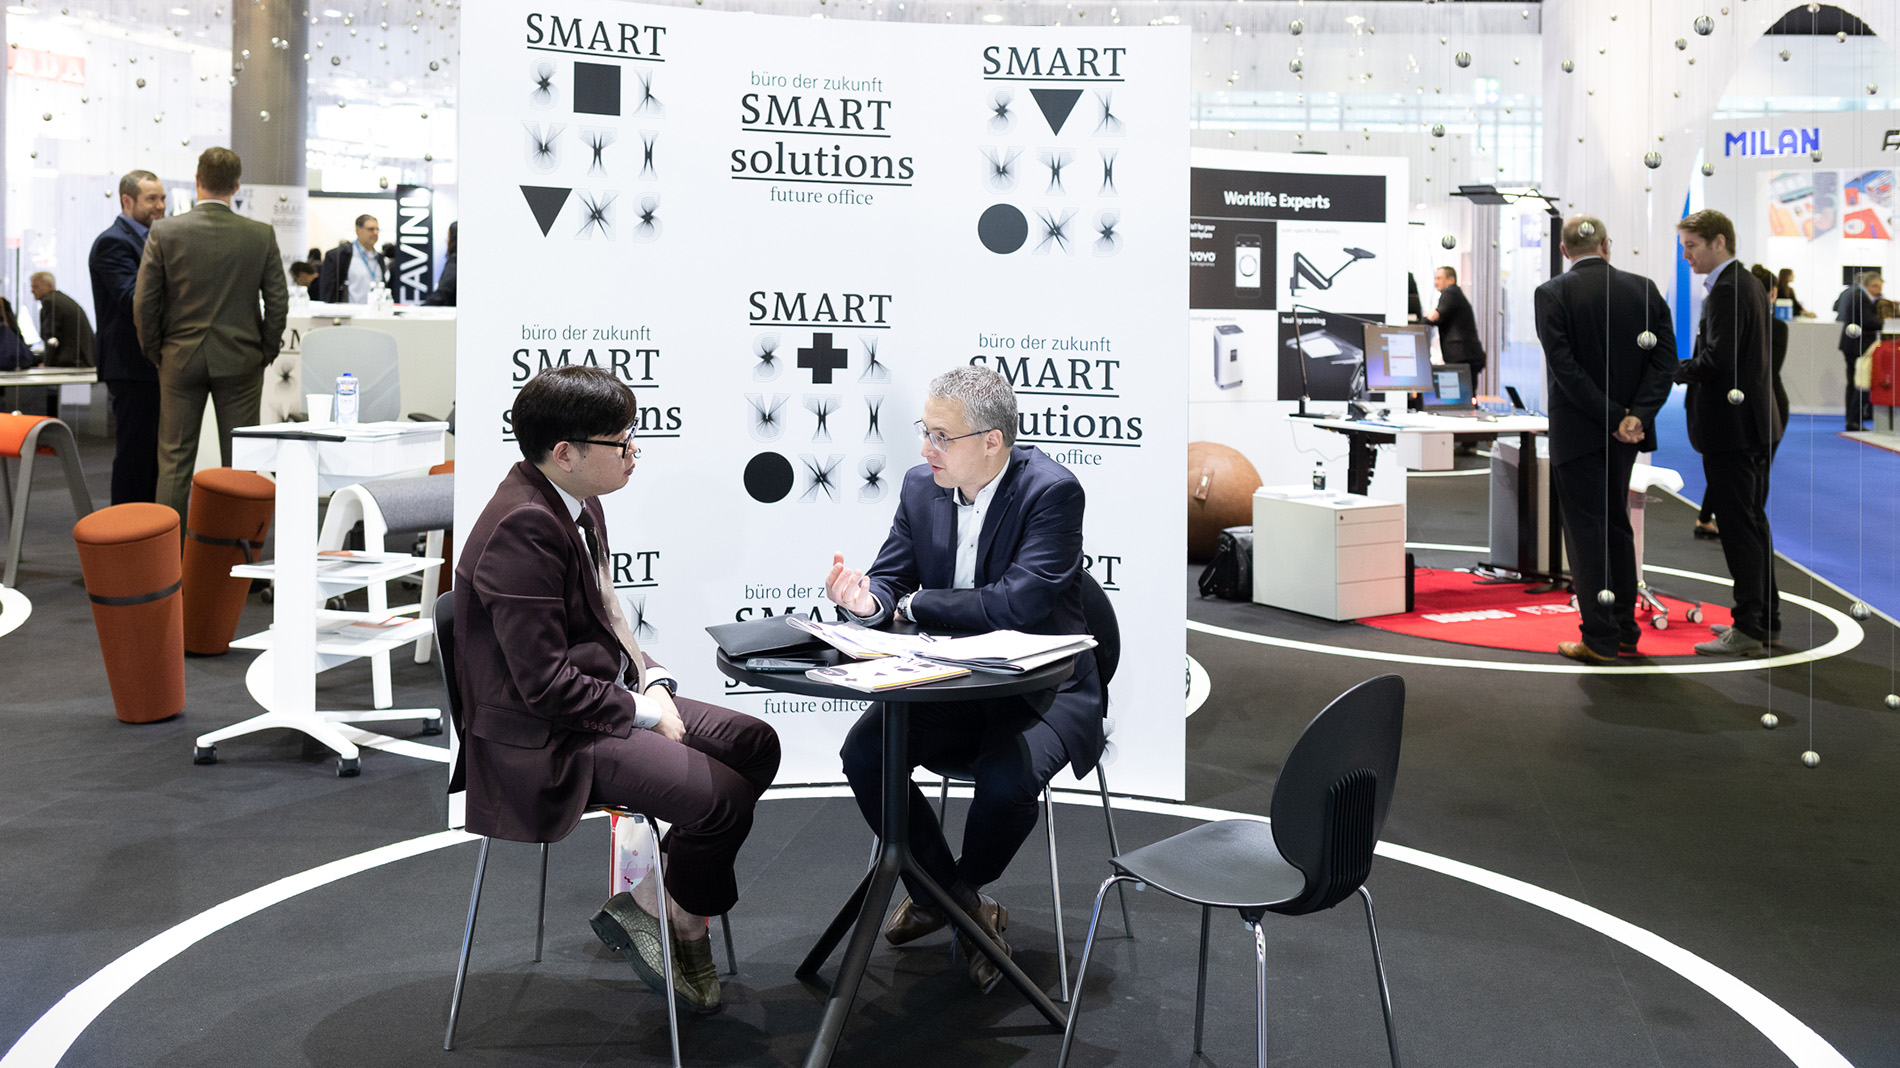 'Future Office' with a focus on smart solutions